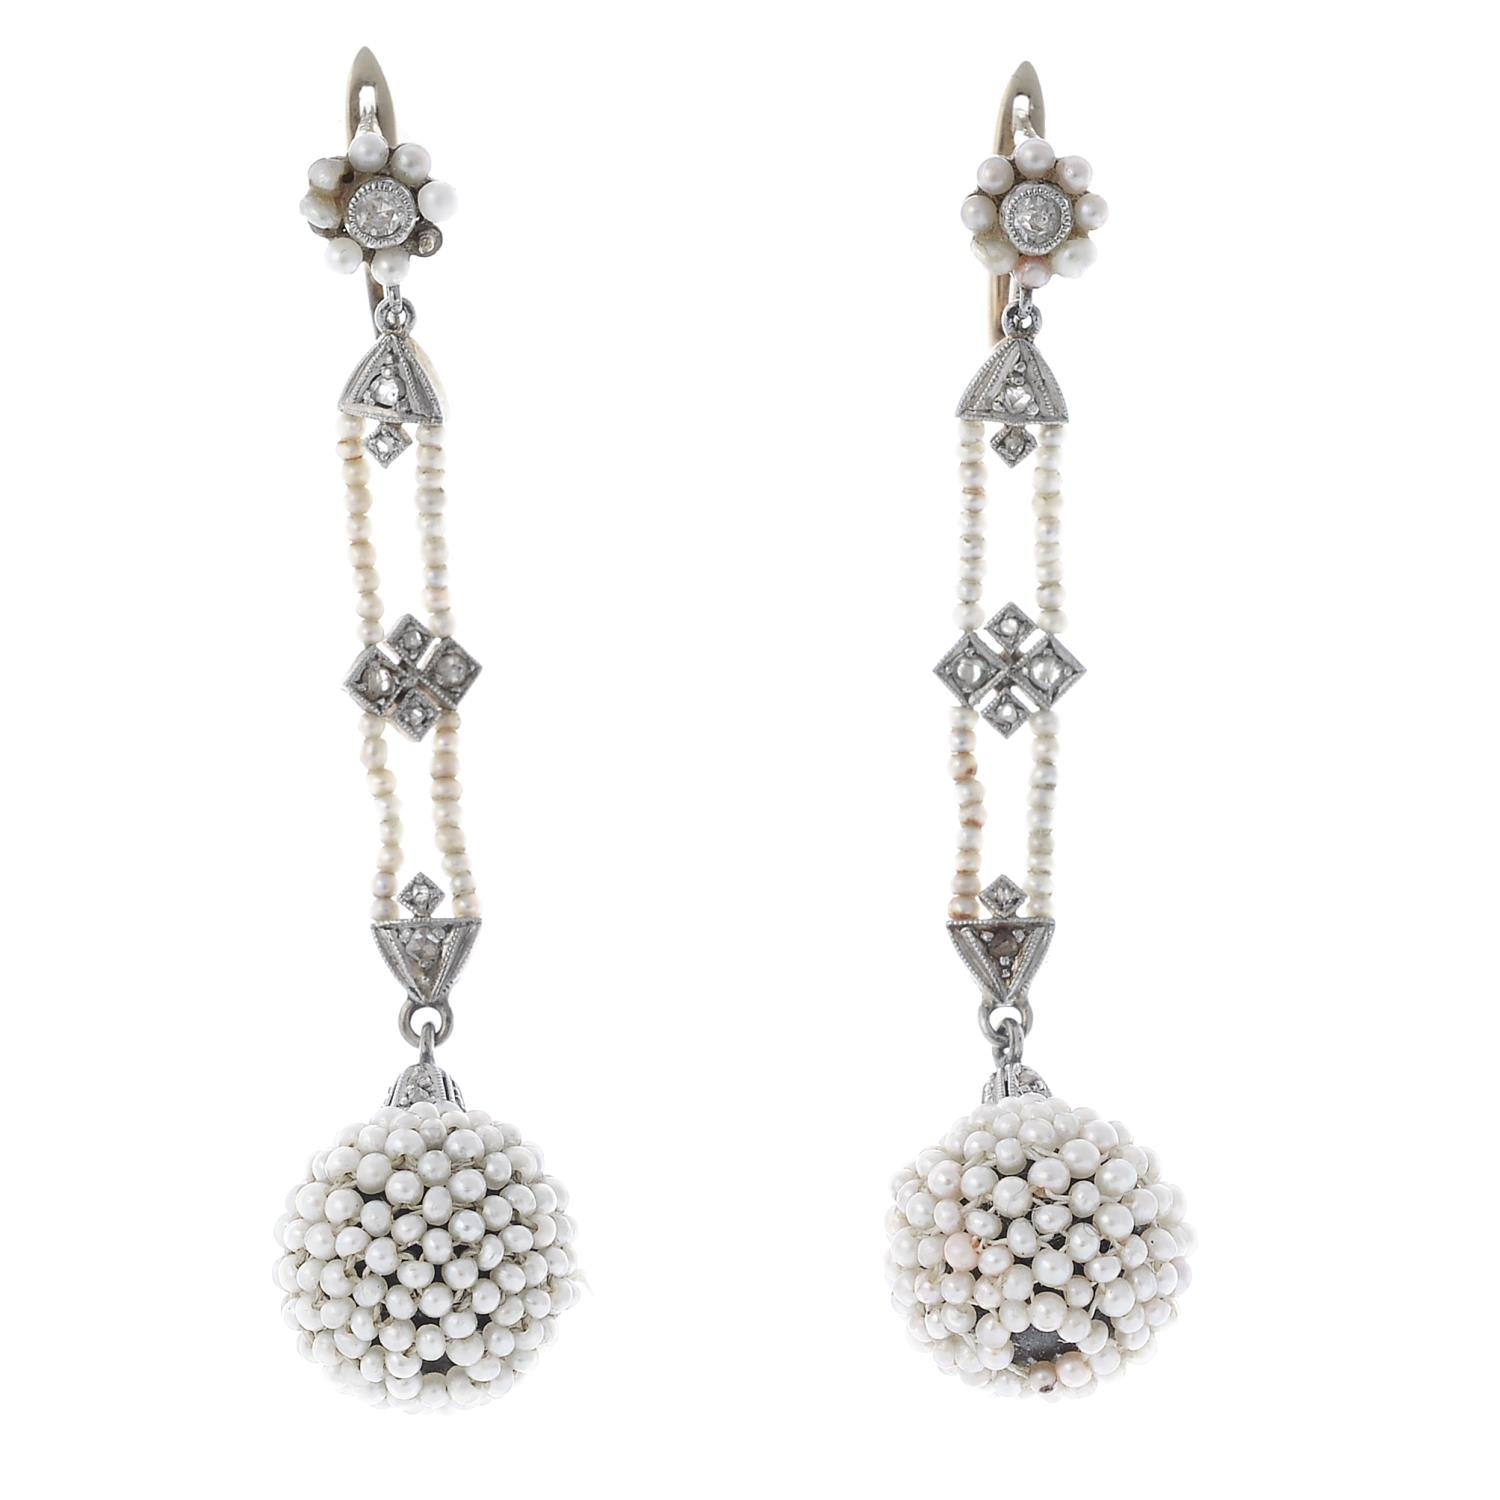 Lot 17 - A pair of early 20th century seed pearl and diamond earrings.